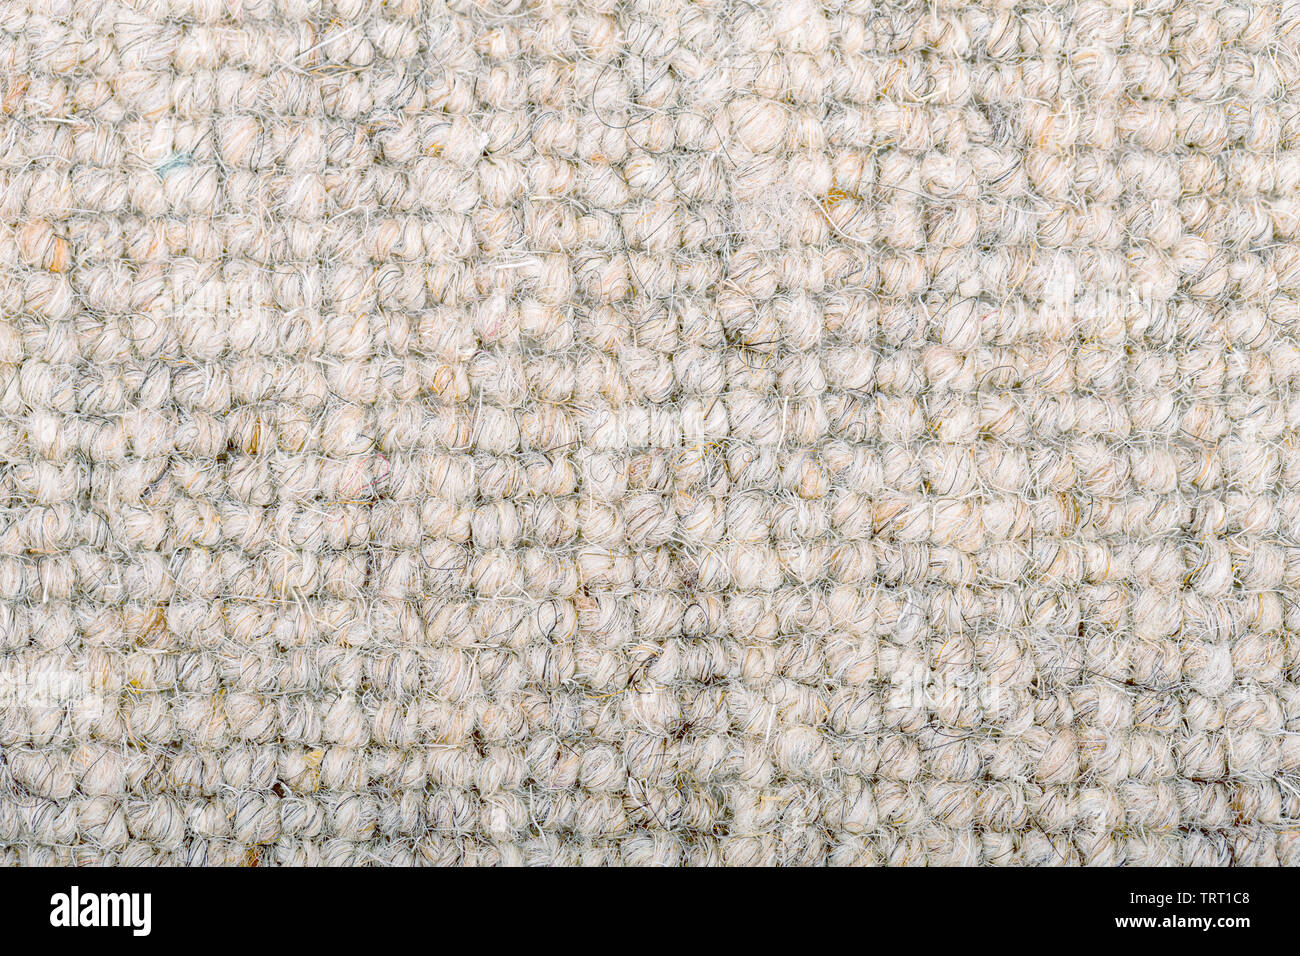 As close up of a loop pile wool carpet in neutral, cream and beige tones. - Stock Image